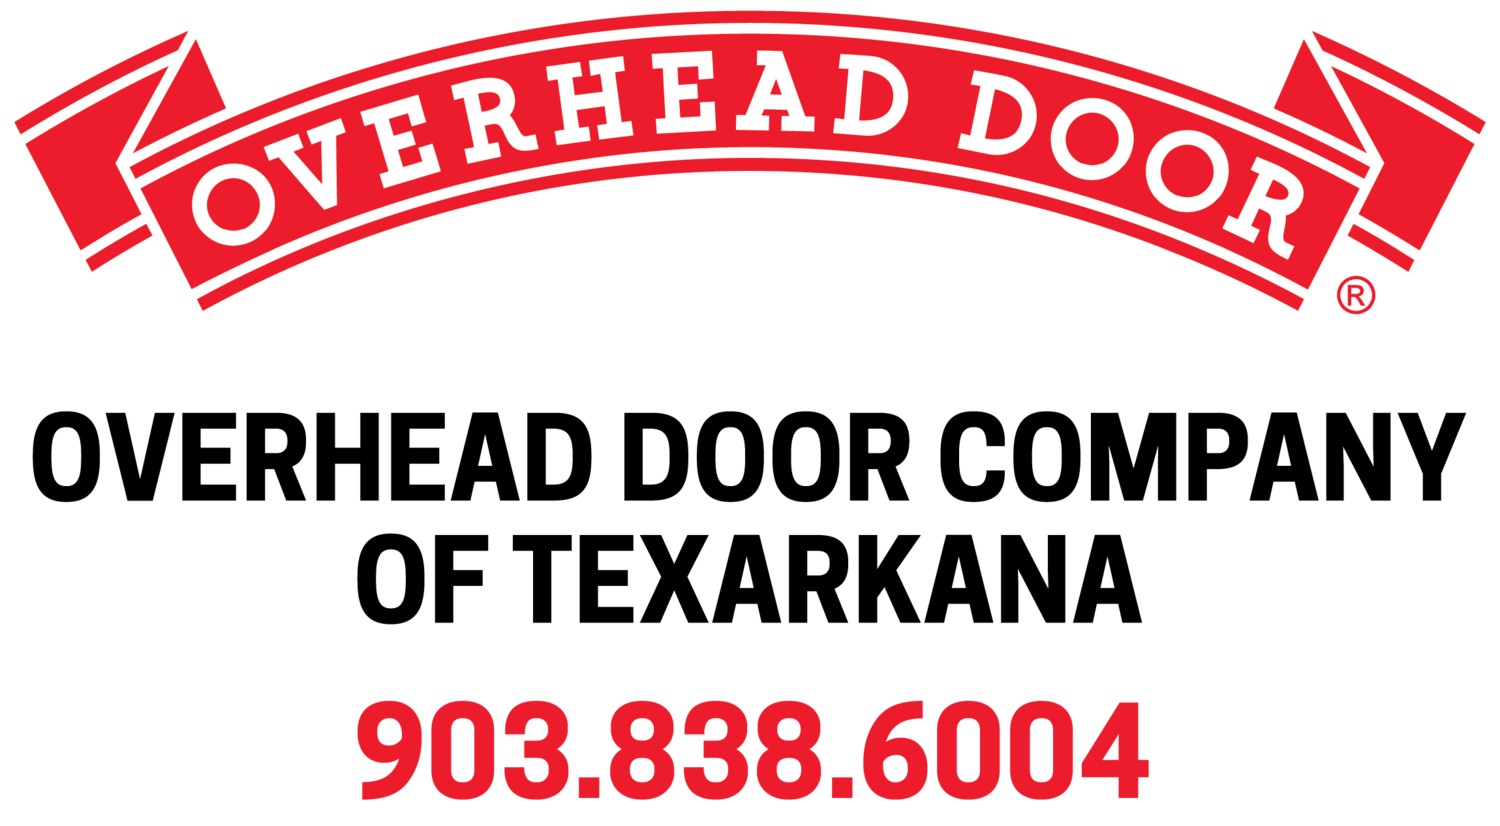 Overhead Door Company of Texarkana